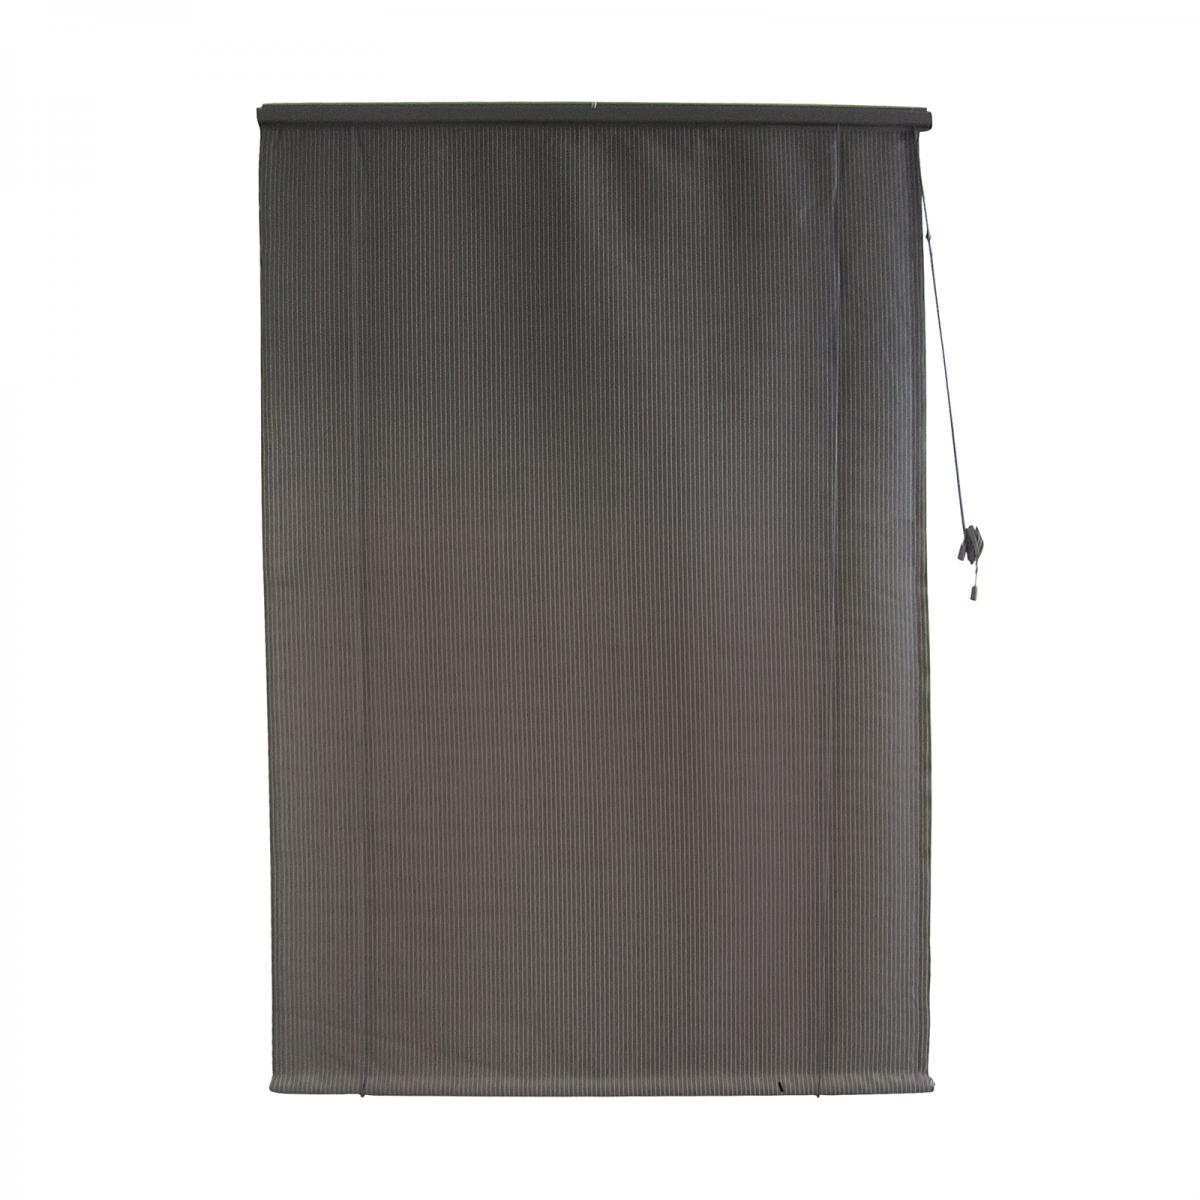 <b>Shadecloth Roll Up Blind</p><p></b>Charcoal